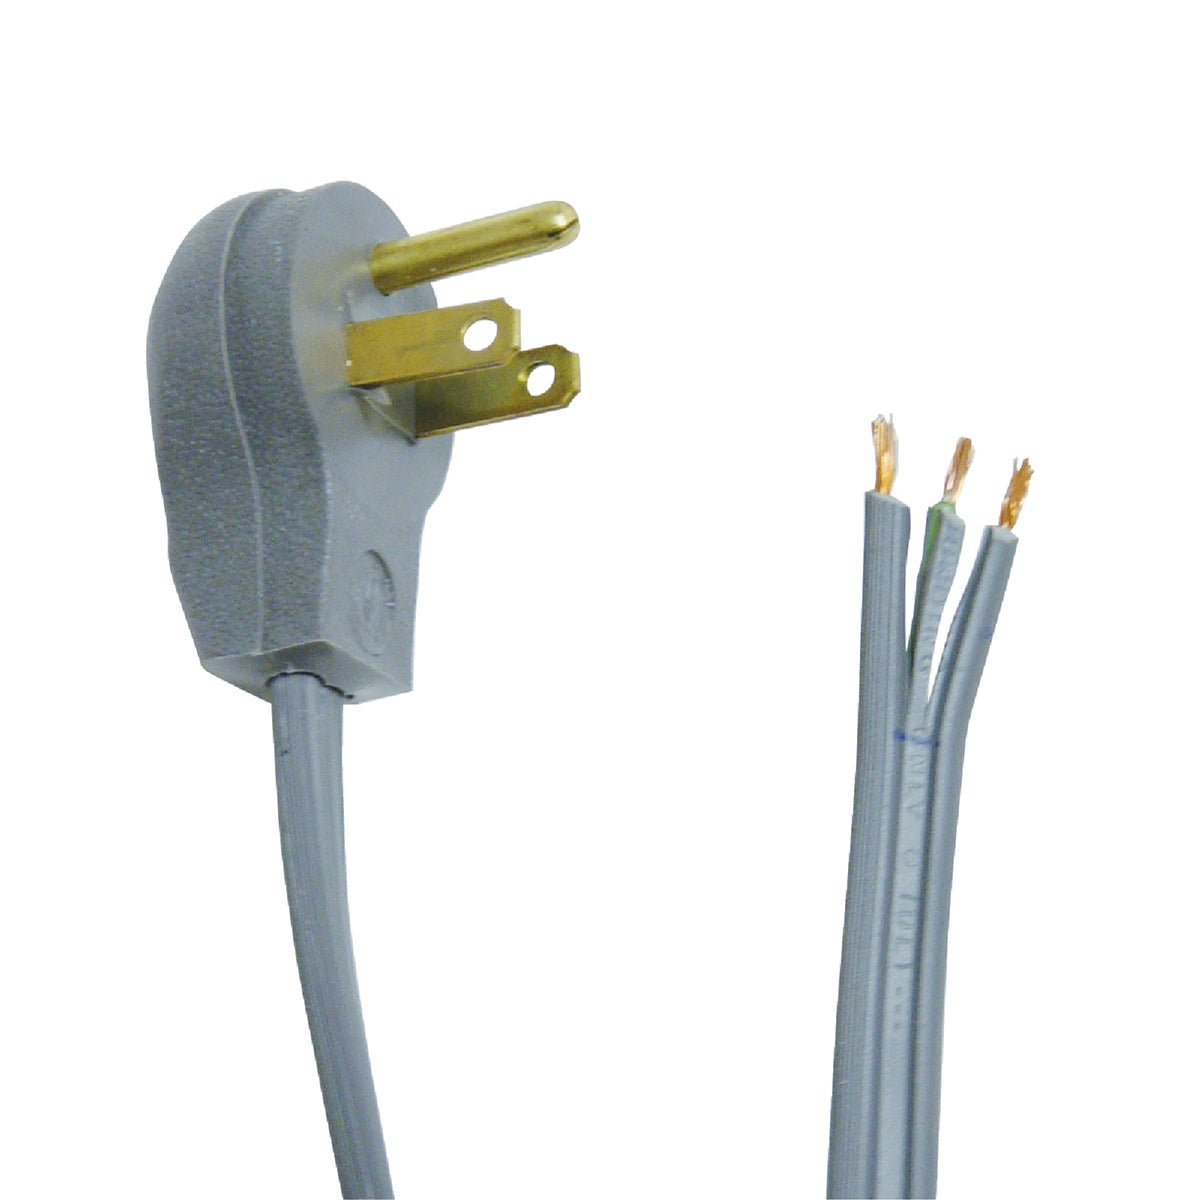 3' 16/3 GRAY APPLNC CORD - 3570 by Coleman Cable Import